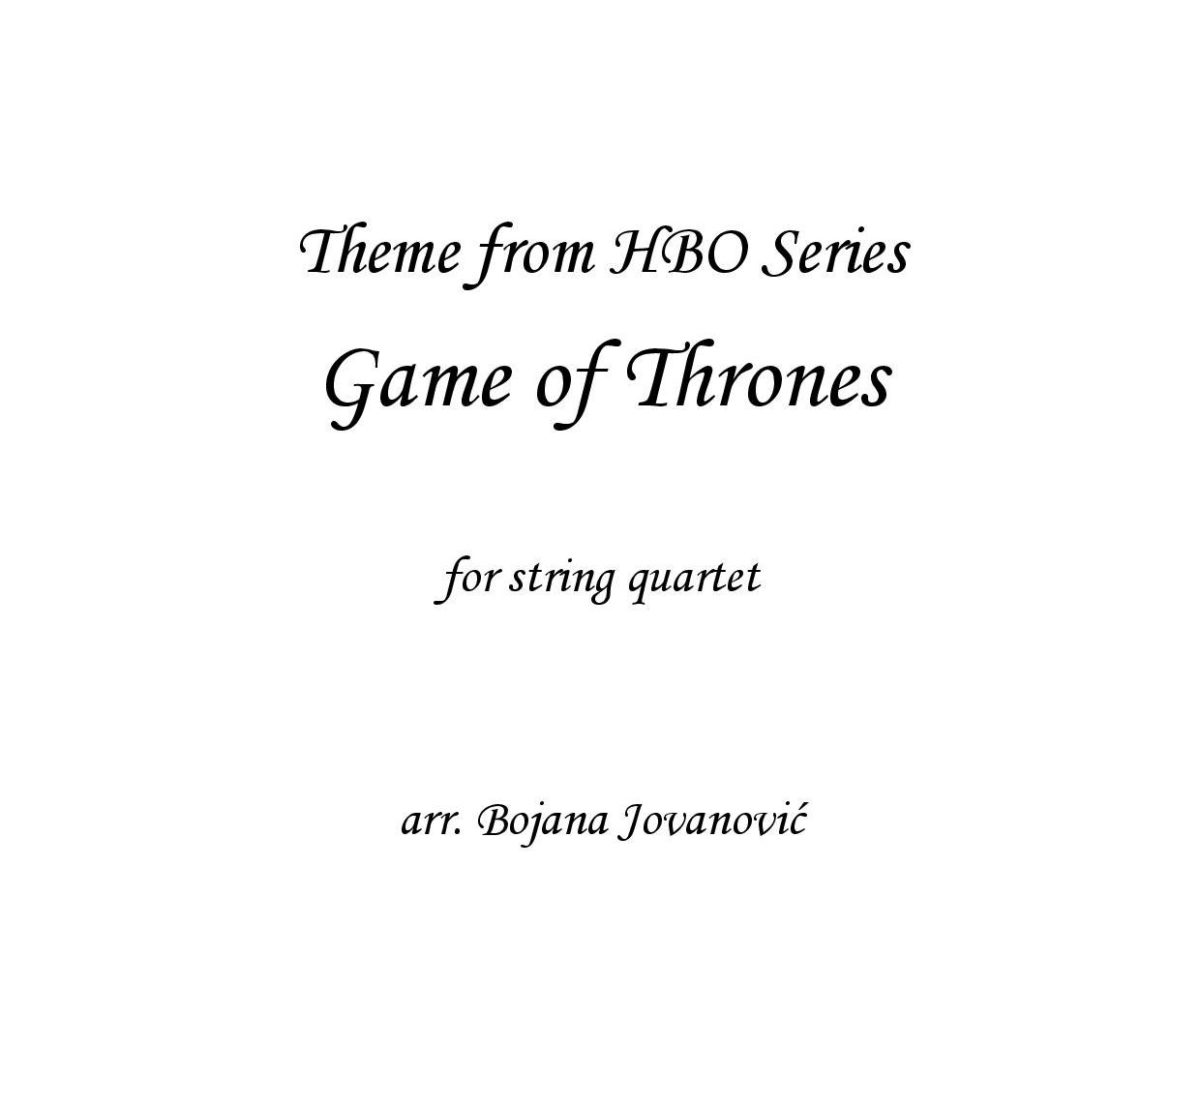 Game of thrones (Ramin Djawadi) - Sheet Music